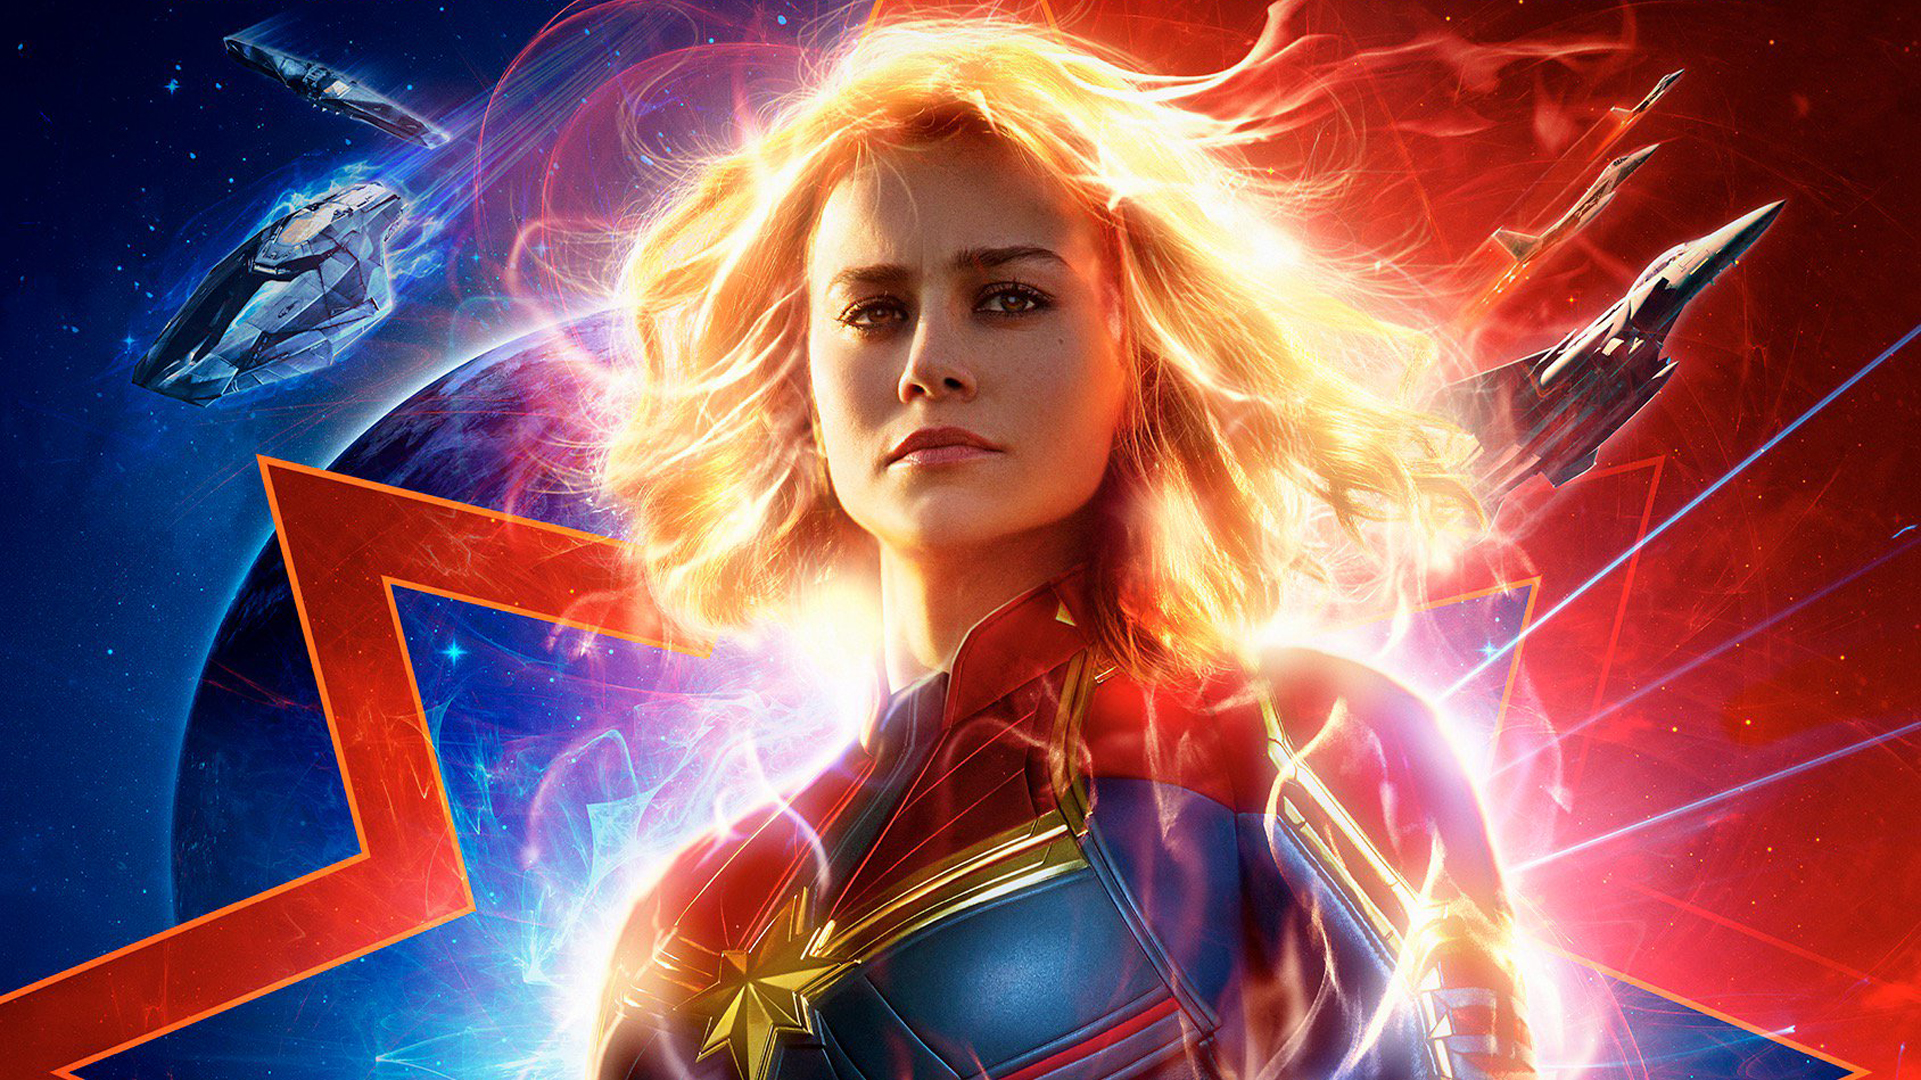 Movie Poster 2019: 1242x2688 Captain Marvel Movie Poster 2019 Iphone XS MAX